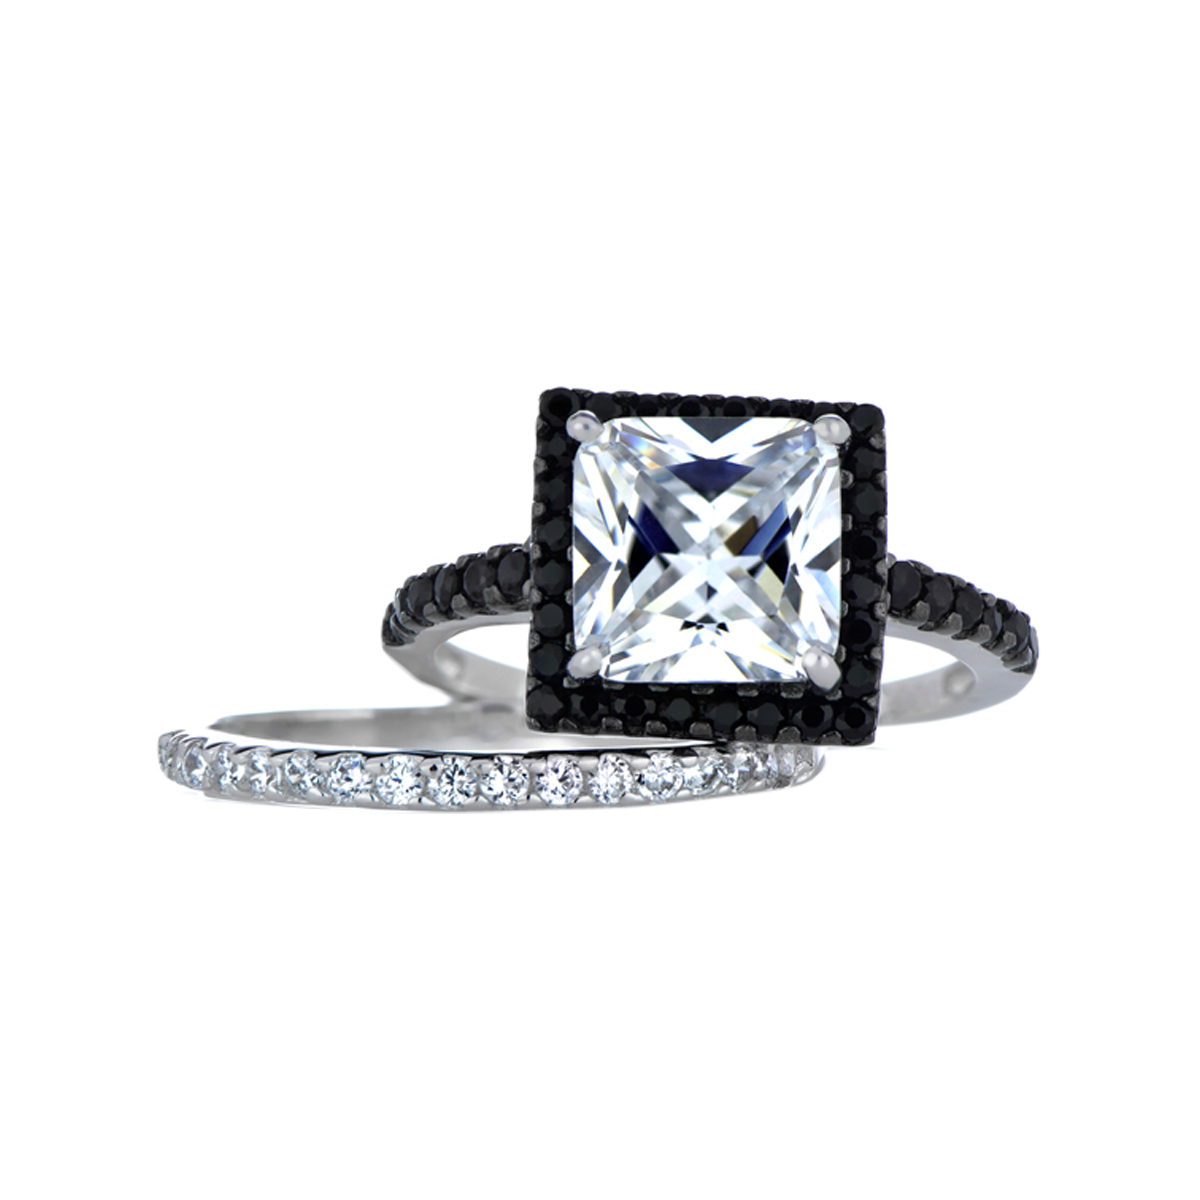 cassias princess cut black and white cz wedding ring set - Black Wedding Rings Sets